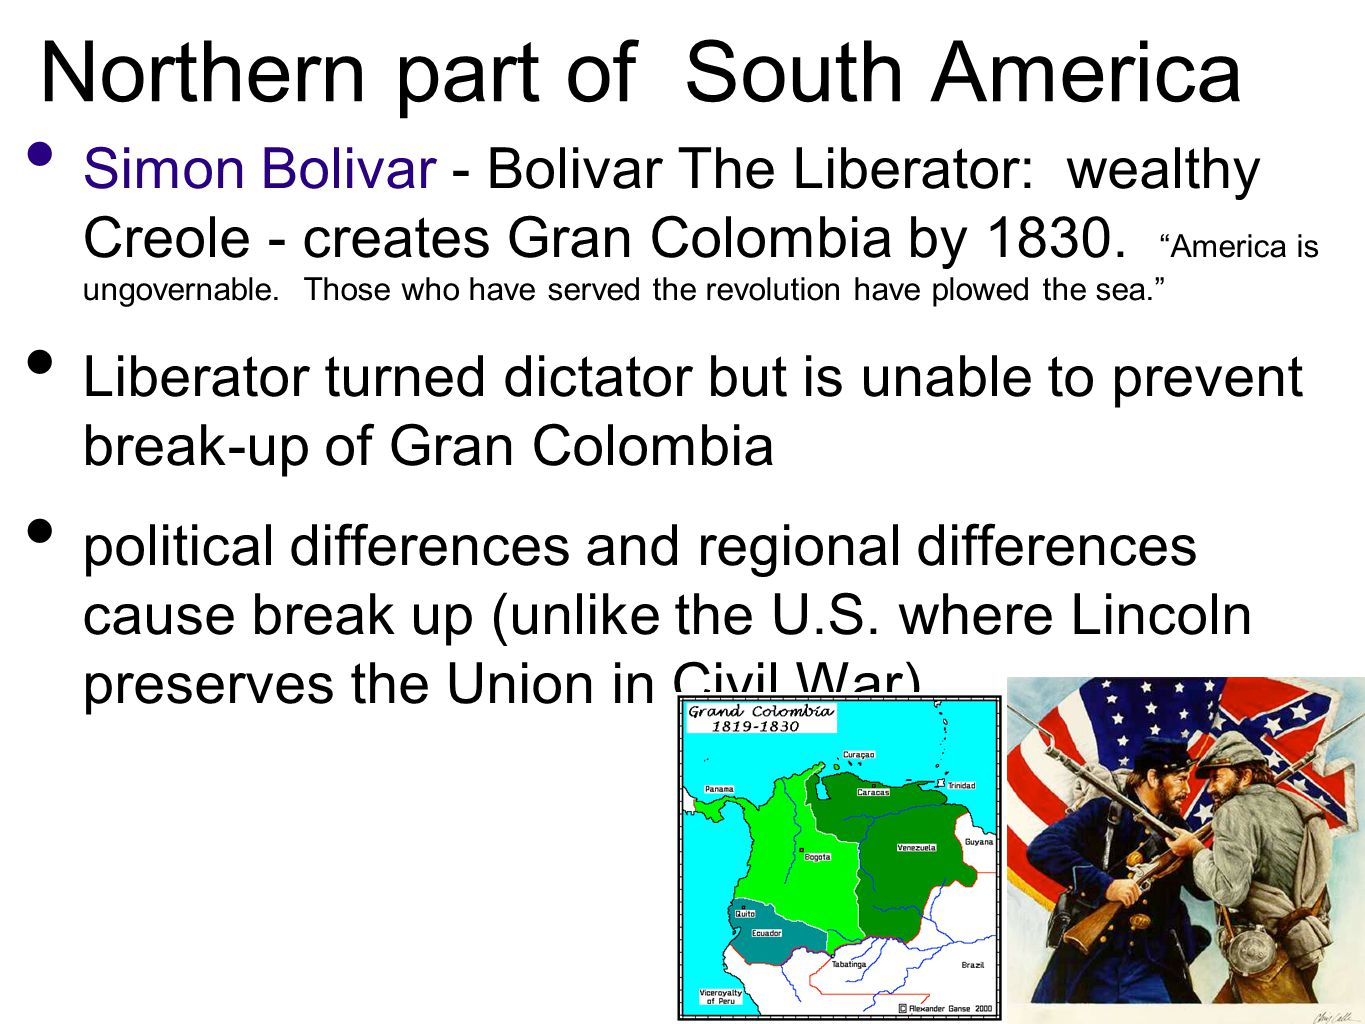 Northern part of South America Simon Bolivar - Bolivar The Liberator: wealthy Creole - creates Gran Colombia by 1830.